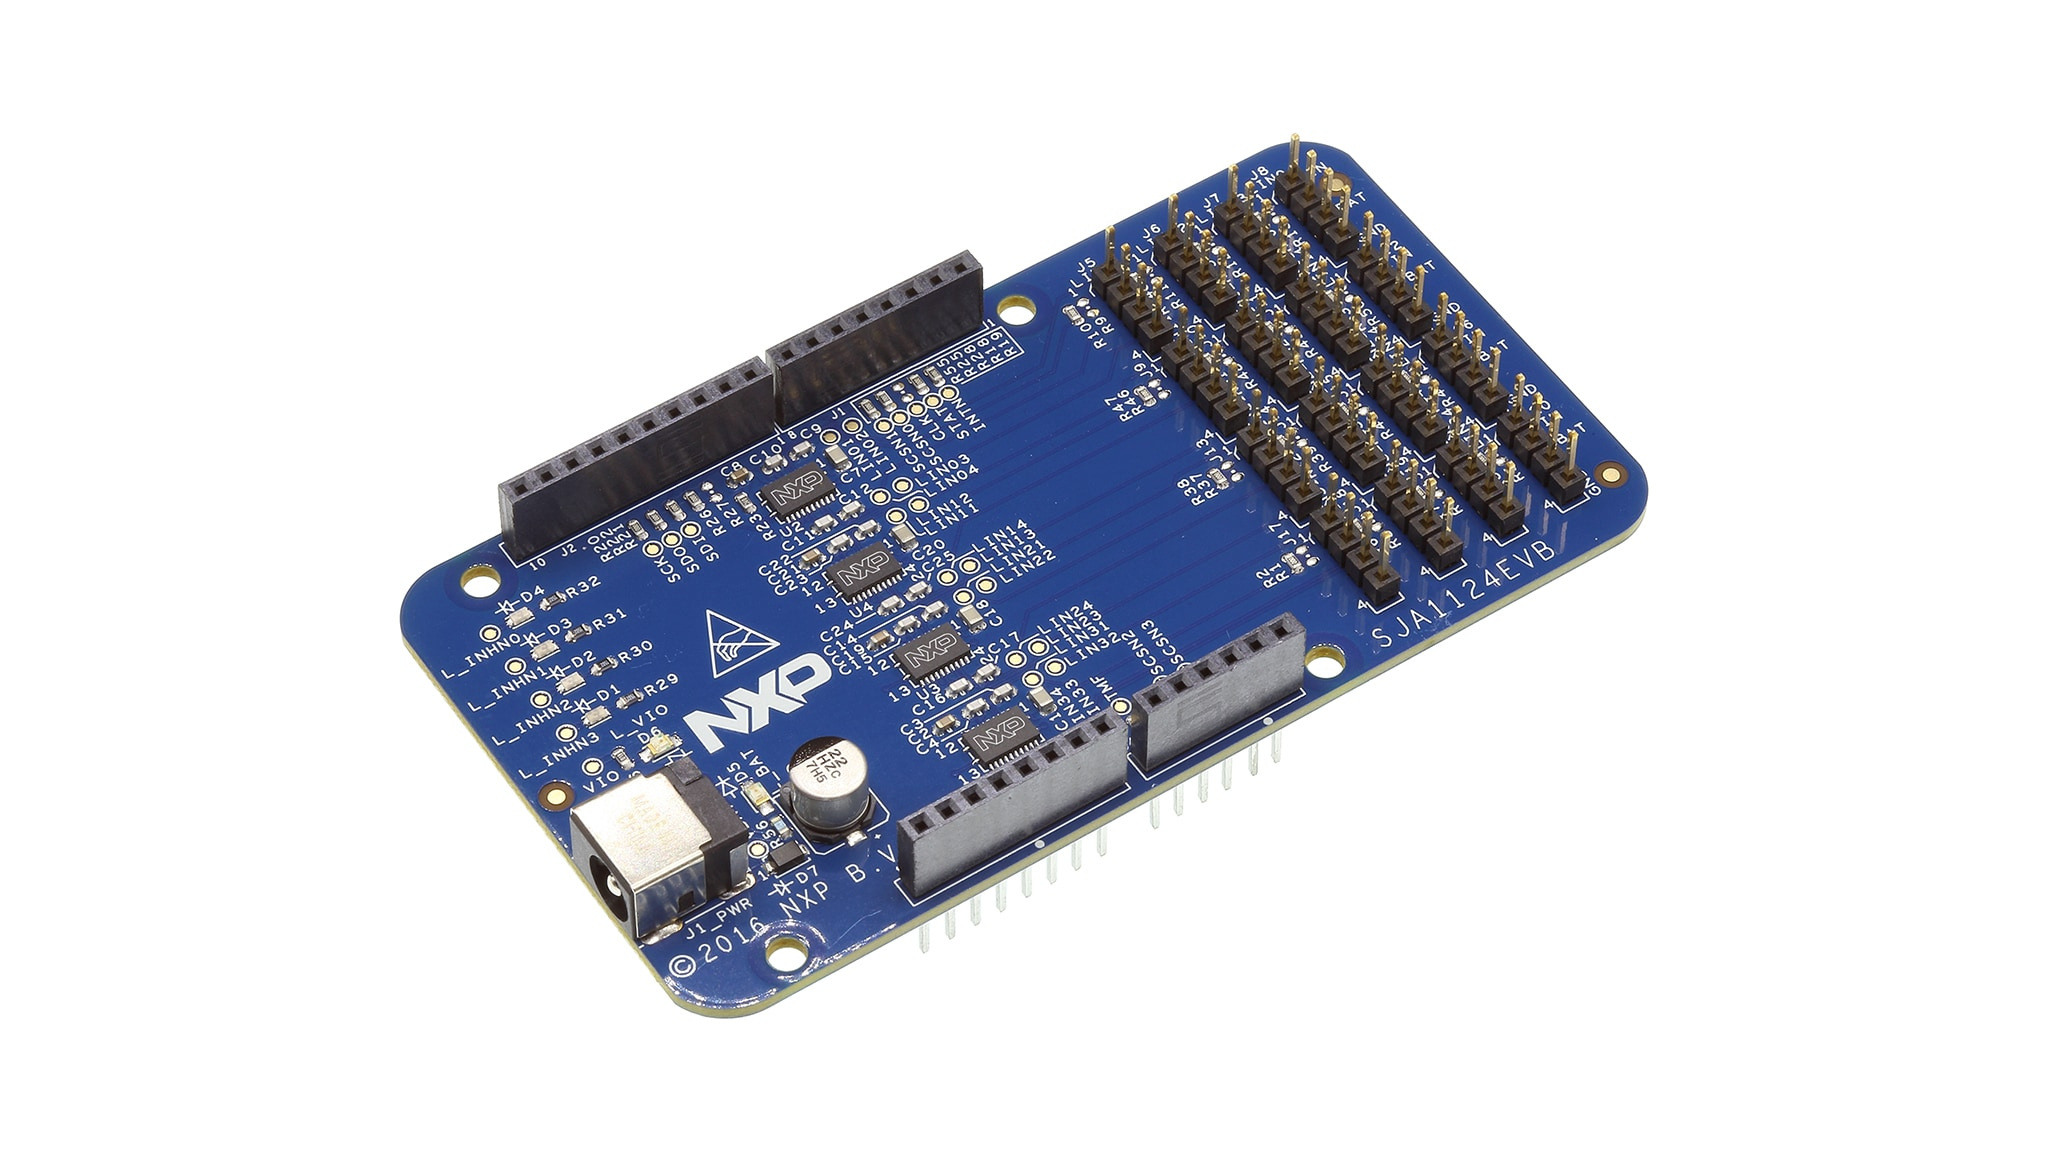 SJA1124EVB: Evaluation Board for SJA1124 SPI to Quad-LIN Bridge